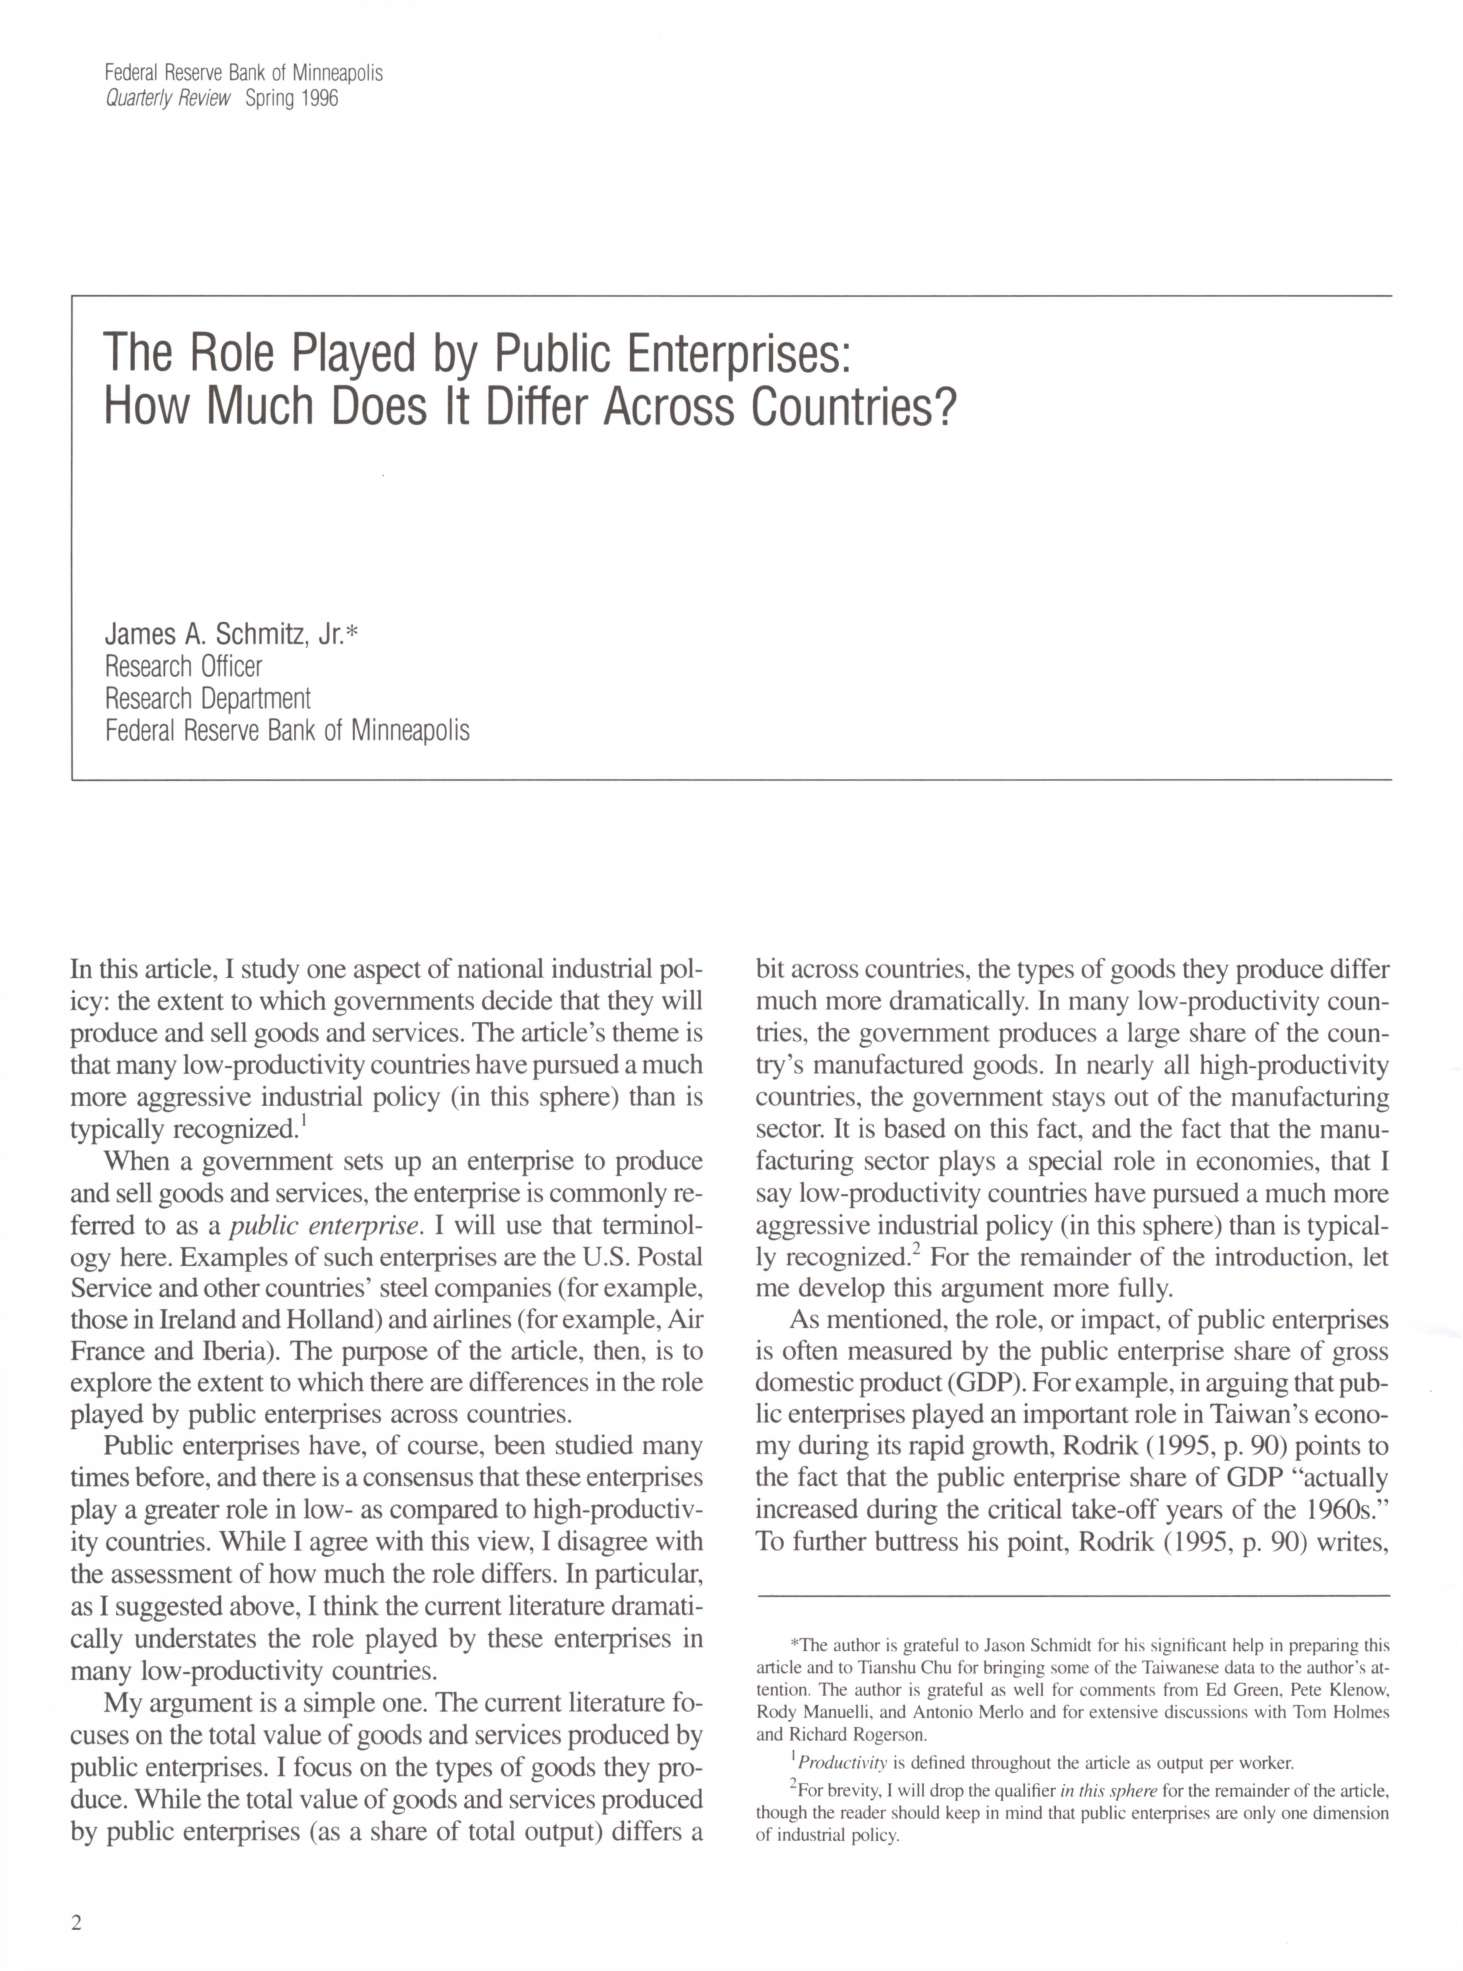 Federal Reserve Bank of Minneapolis Quarterly Review Spring 1996 The Role Played by Public Enterprises: How Much Does It Differ Across Countries? James A. Schmitz, Jr.